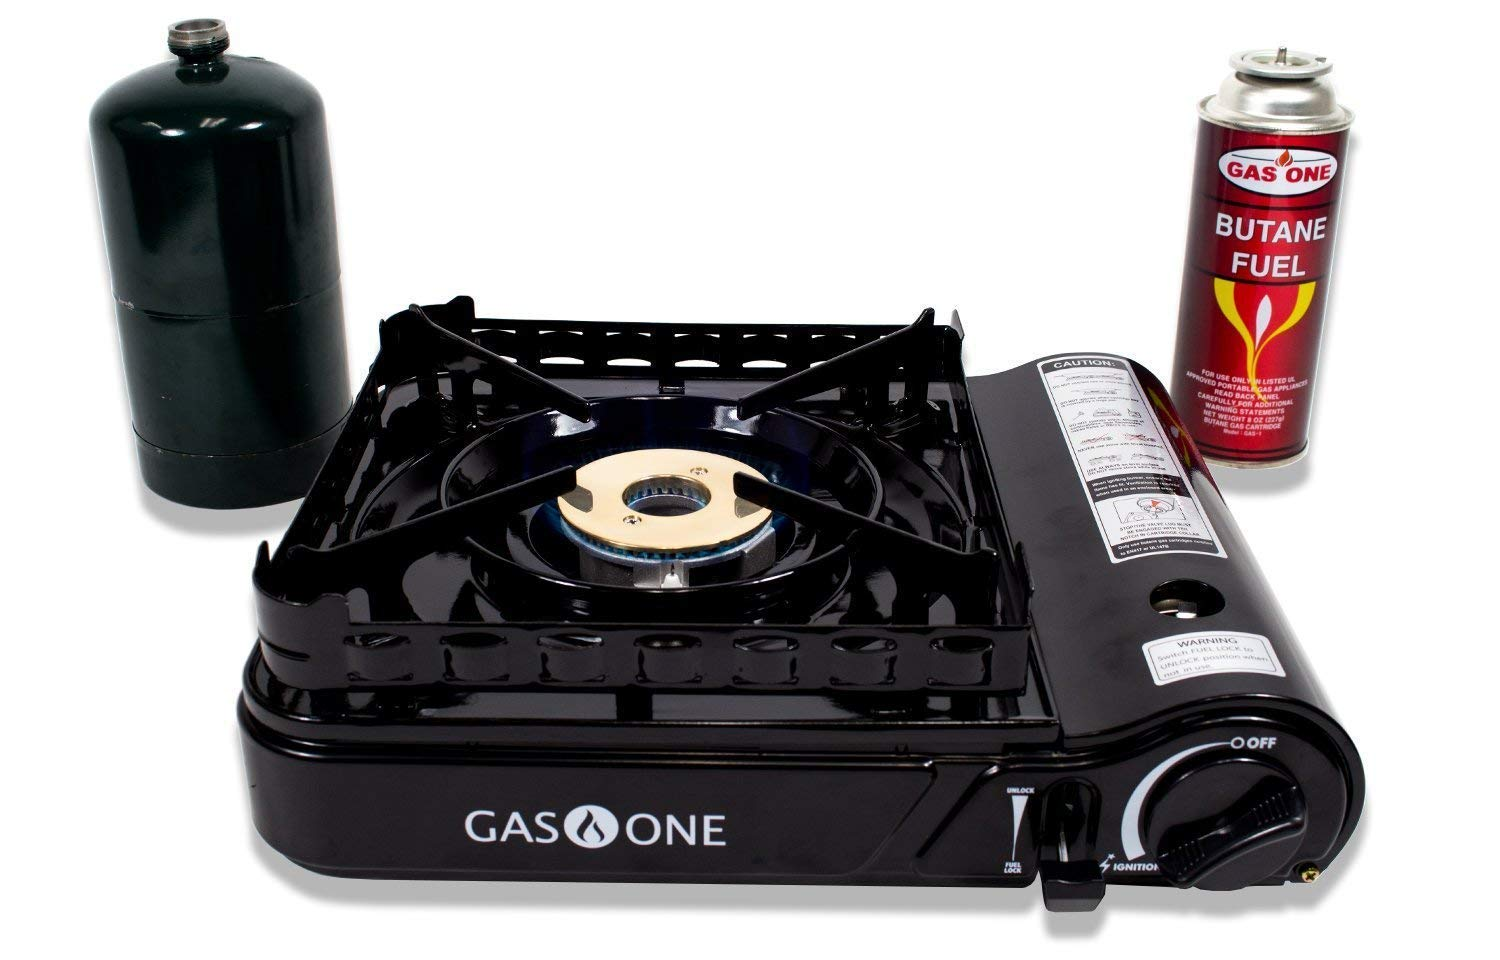 Gas ONE GS-3900P Dual Fuel Propane Or Butane Portable Stove with Brass Burner Head, Dual Spiral Flame 15,000 Btu Gas Stove with Convenient Carrying Case Latest 2017 Model product image